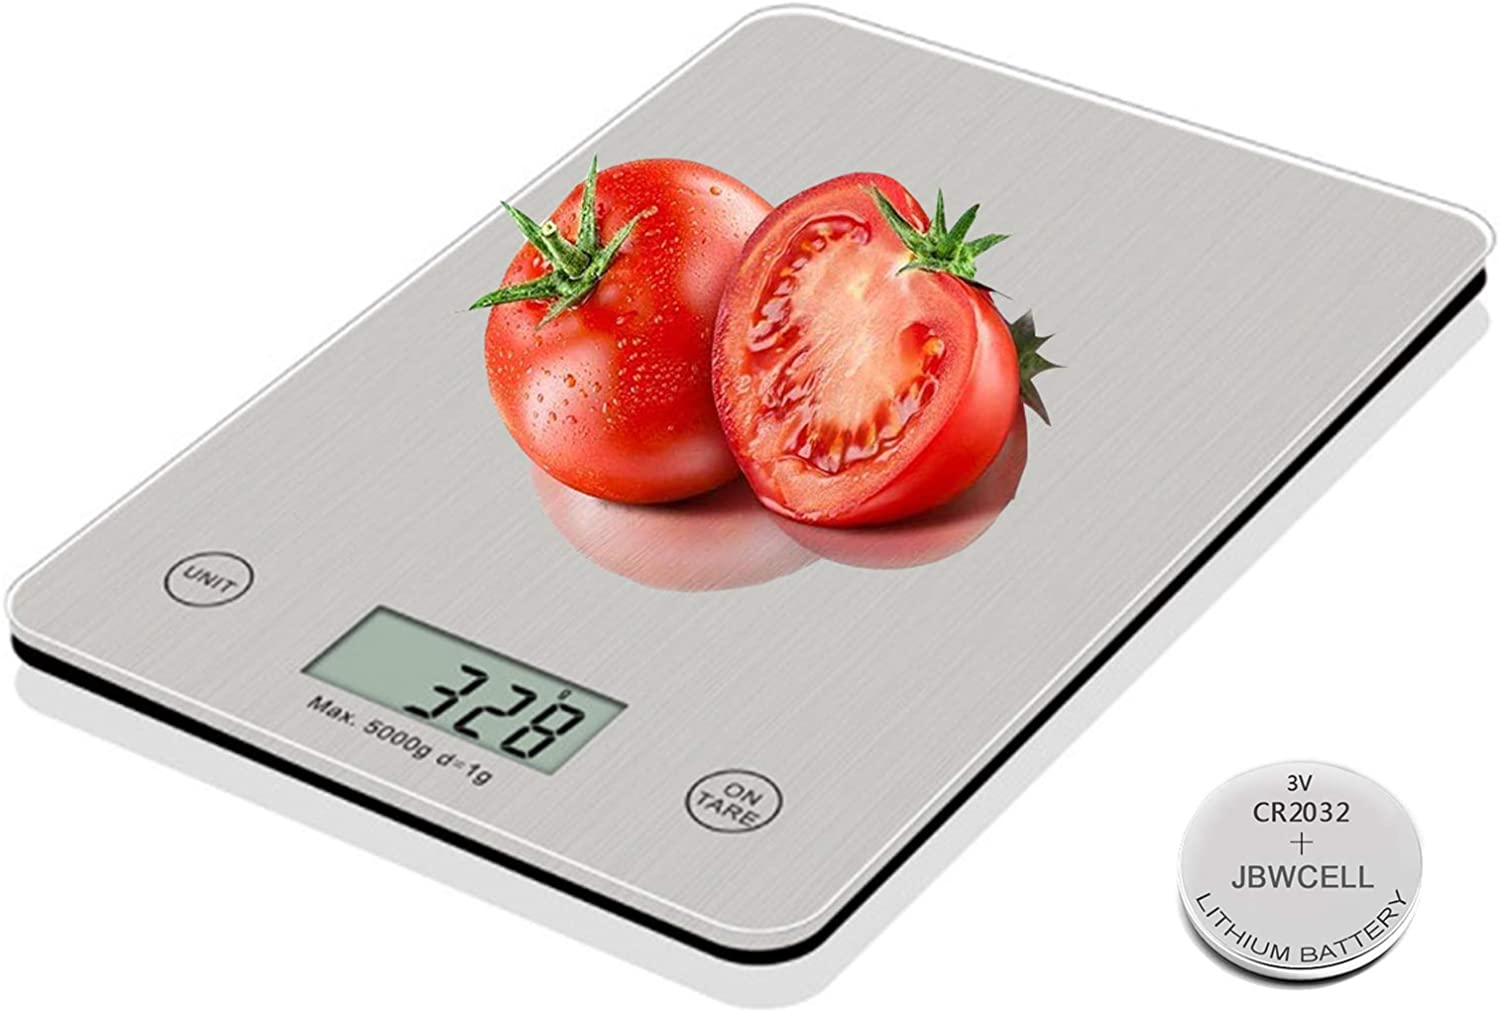 Food Scale, 11lb Digital Kitchen Scale Weight Grams and oz for Cooking Baking, 1g/0.1oz Precise Graduation, Stainless Steel and Tempered Glass